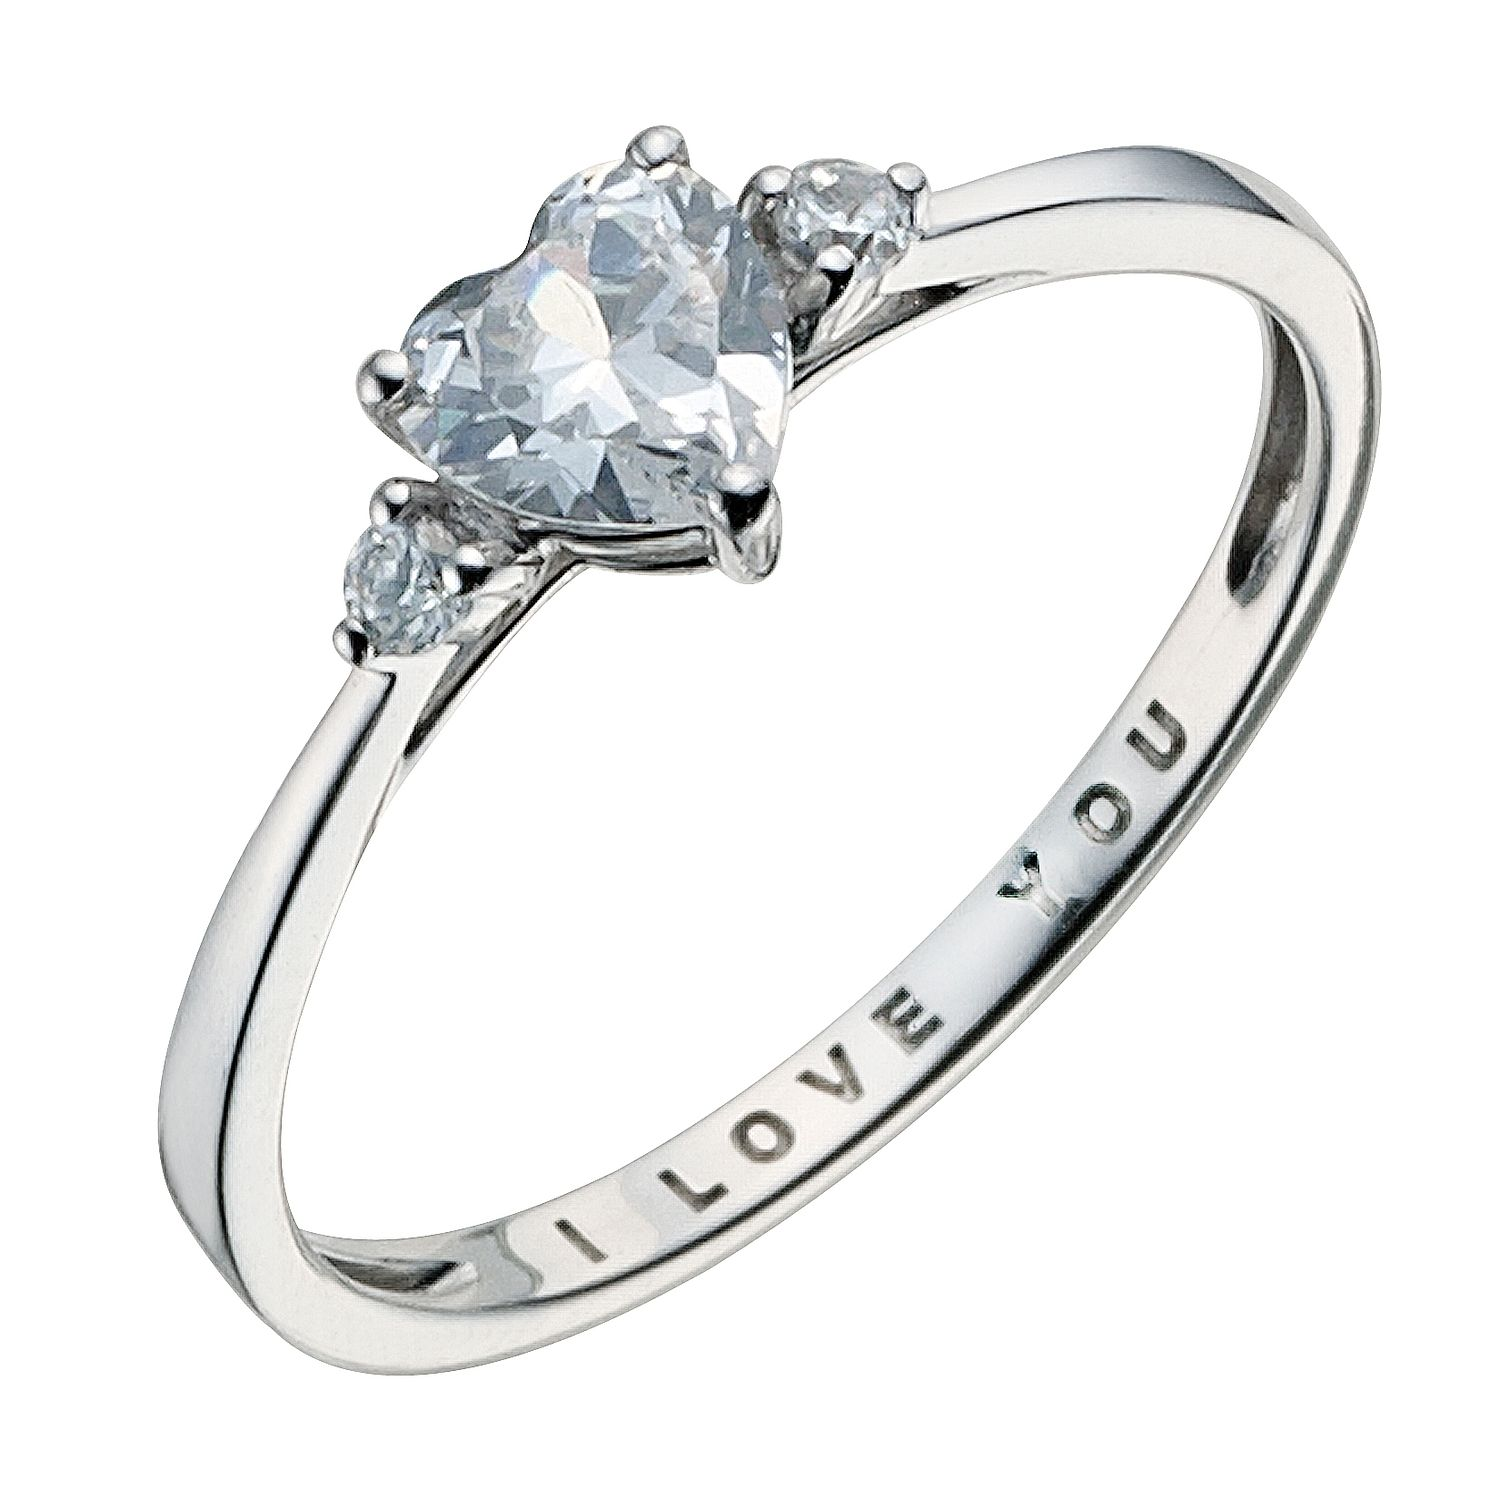 fadccfe7d 9ct White Gold I Love You Ring - Product number 9082549 ...